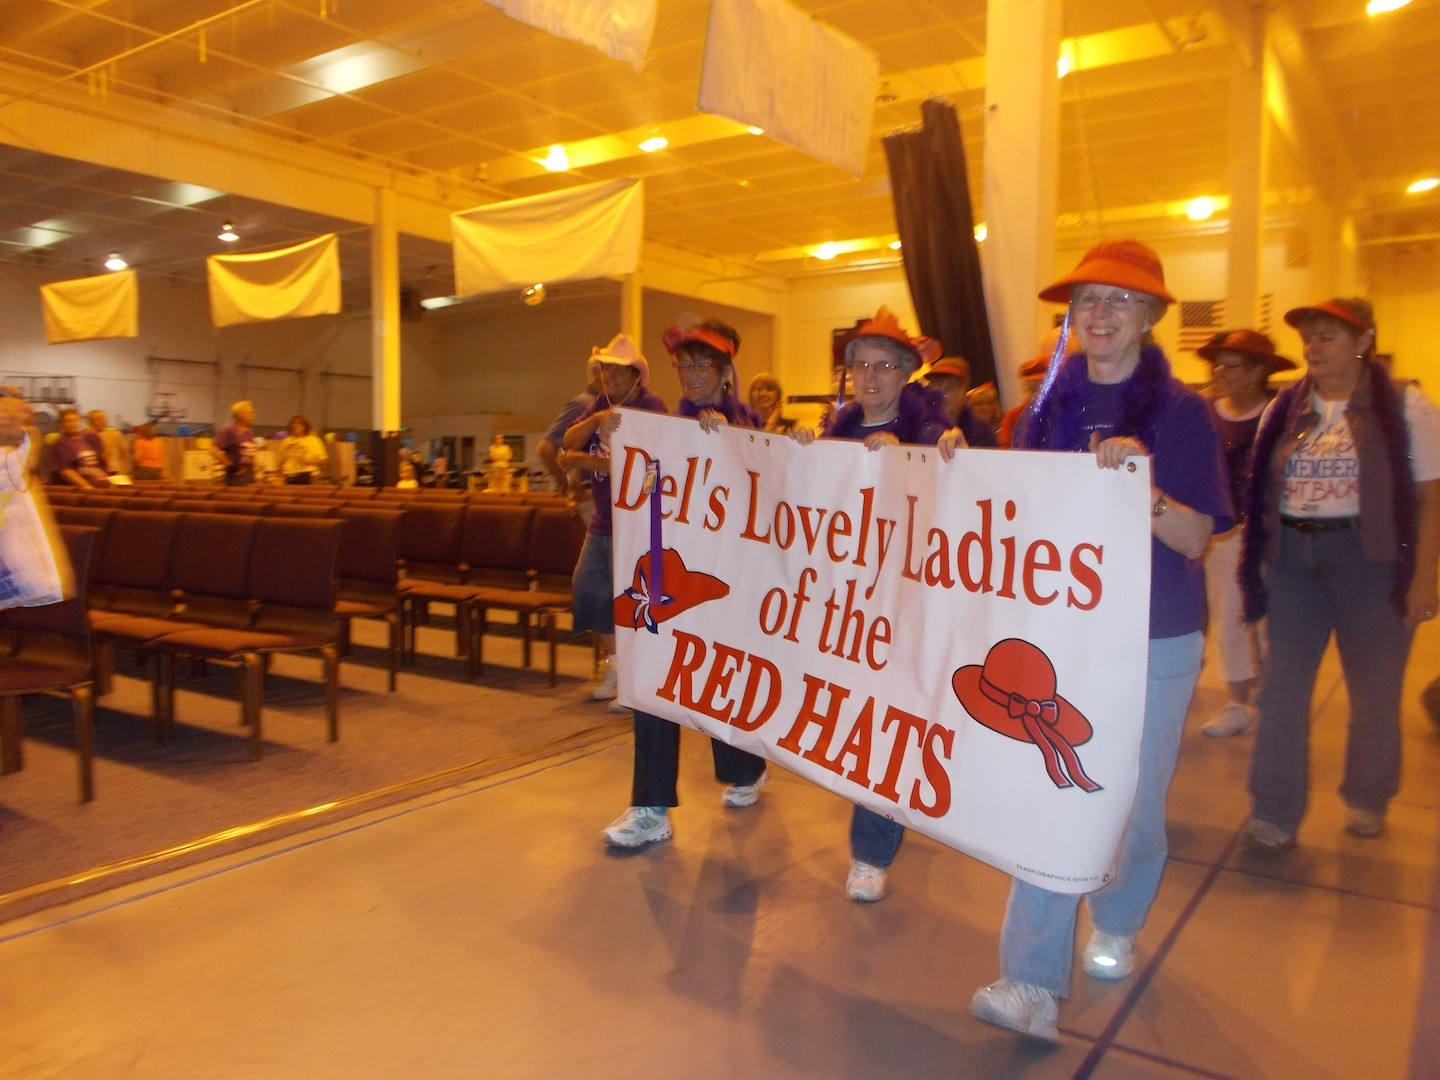 Del's Lovely Ladies of the Red Hats are typically the top fundraising team at almost every Relay for Life of Teller County event. In recent years they and other teams have walked around an indoor track but this year Relay is moving outdoors. It